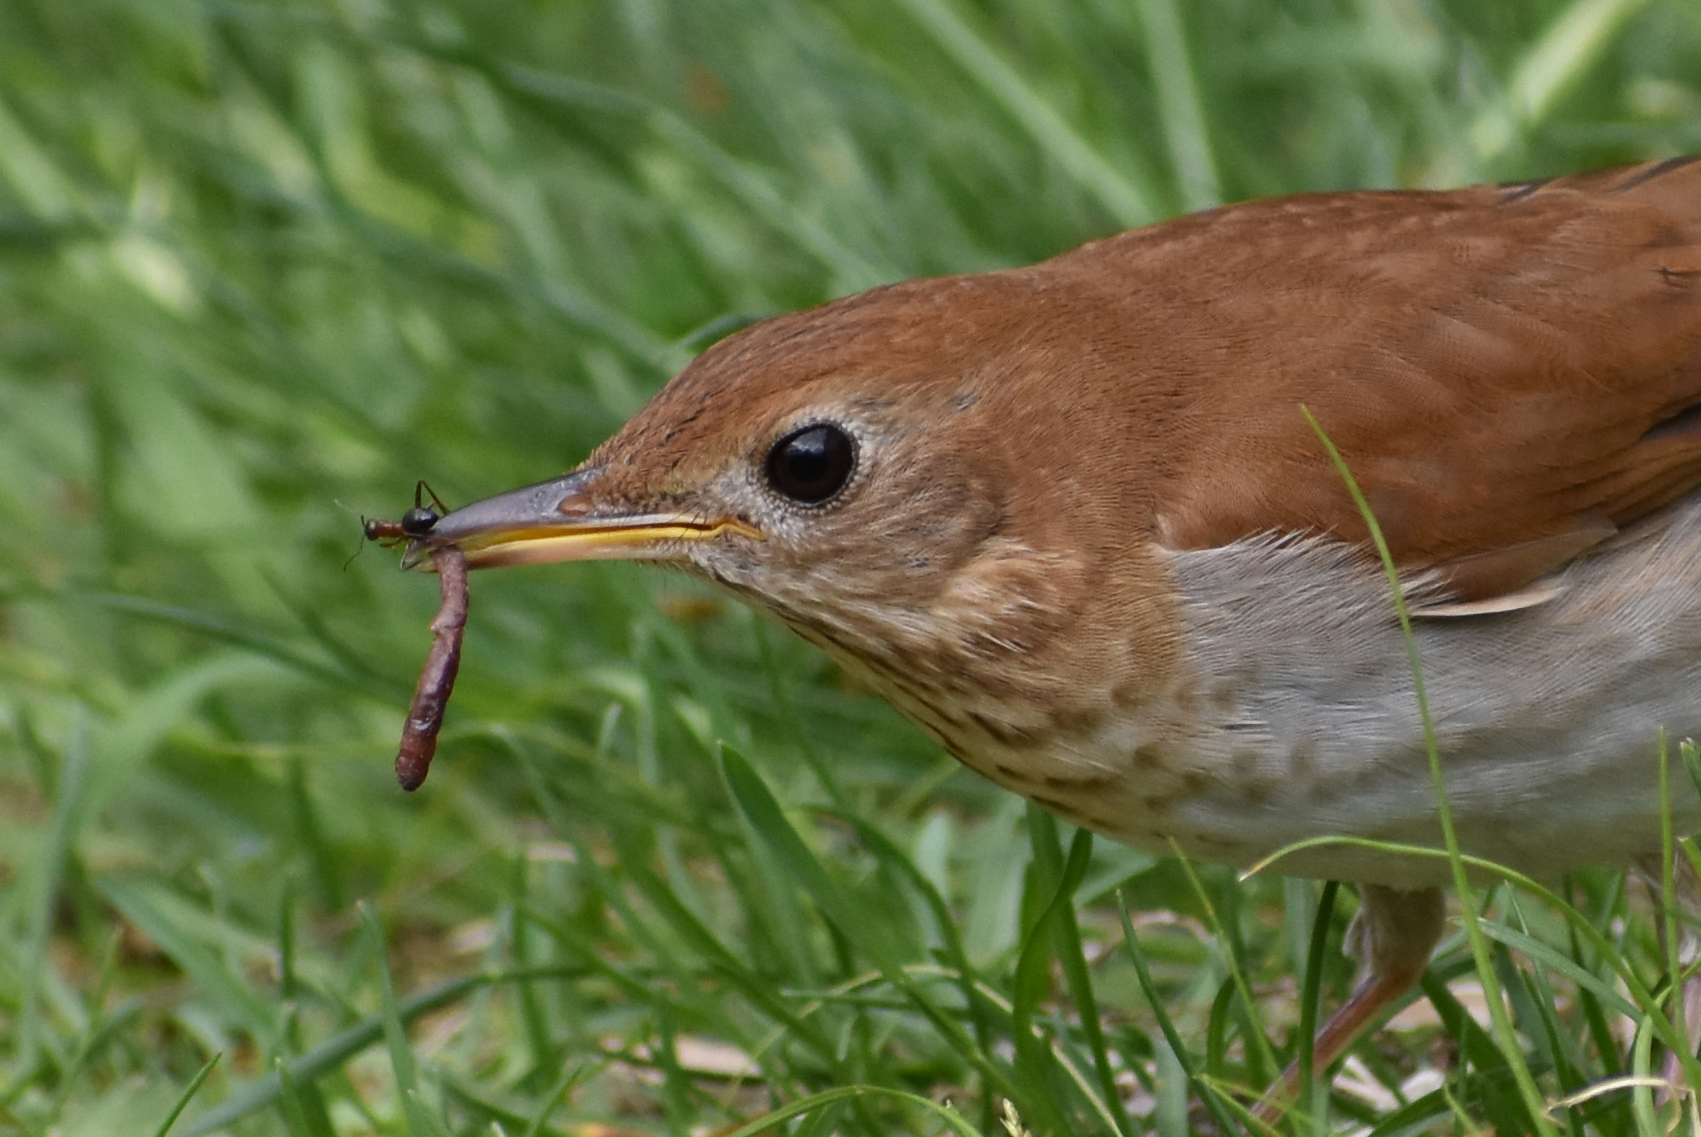 Veery eating an earthworm and an ant?